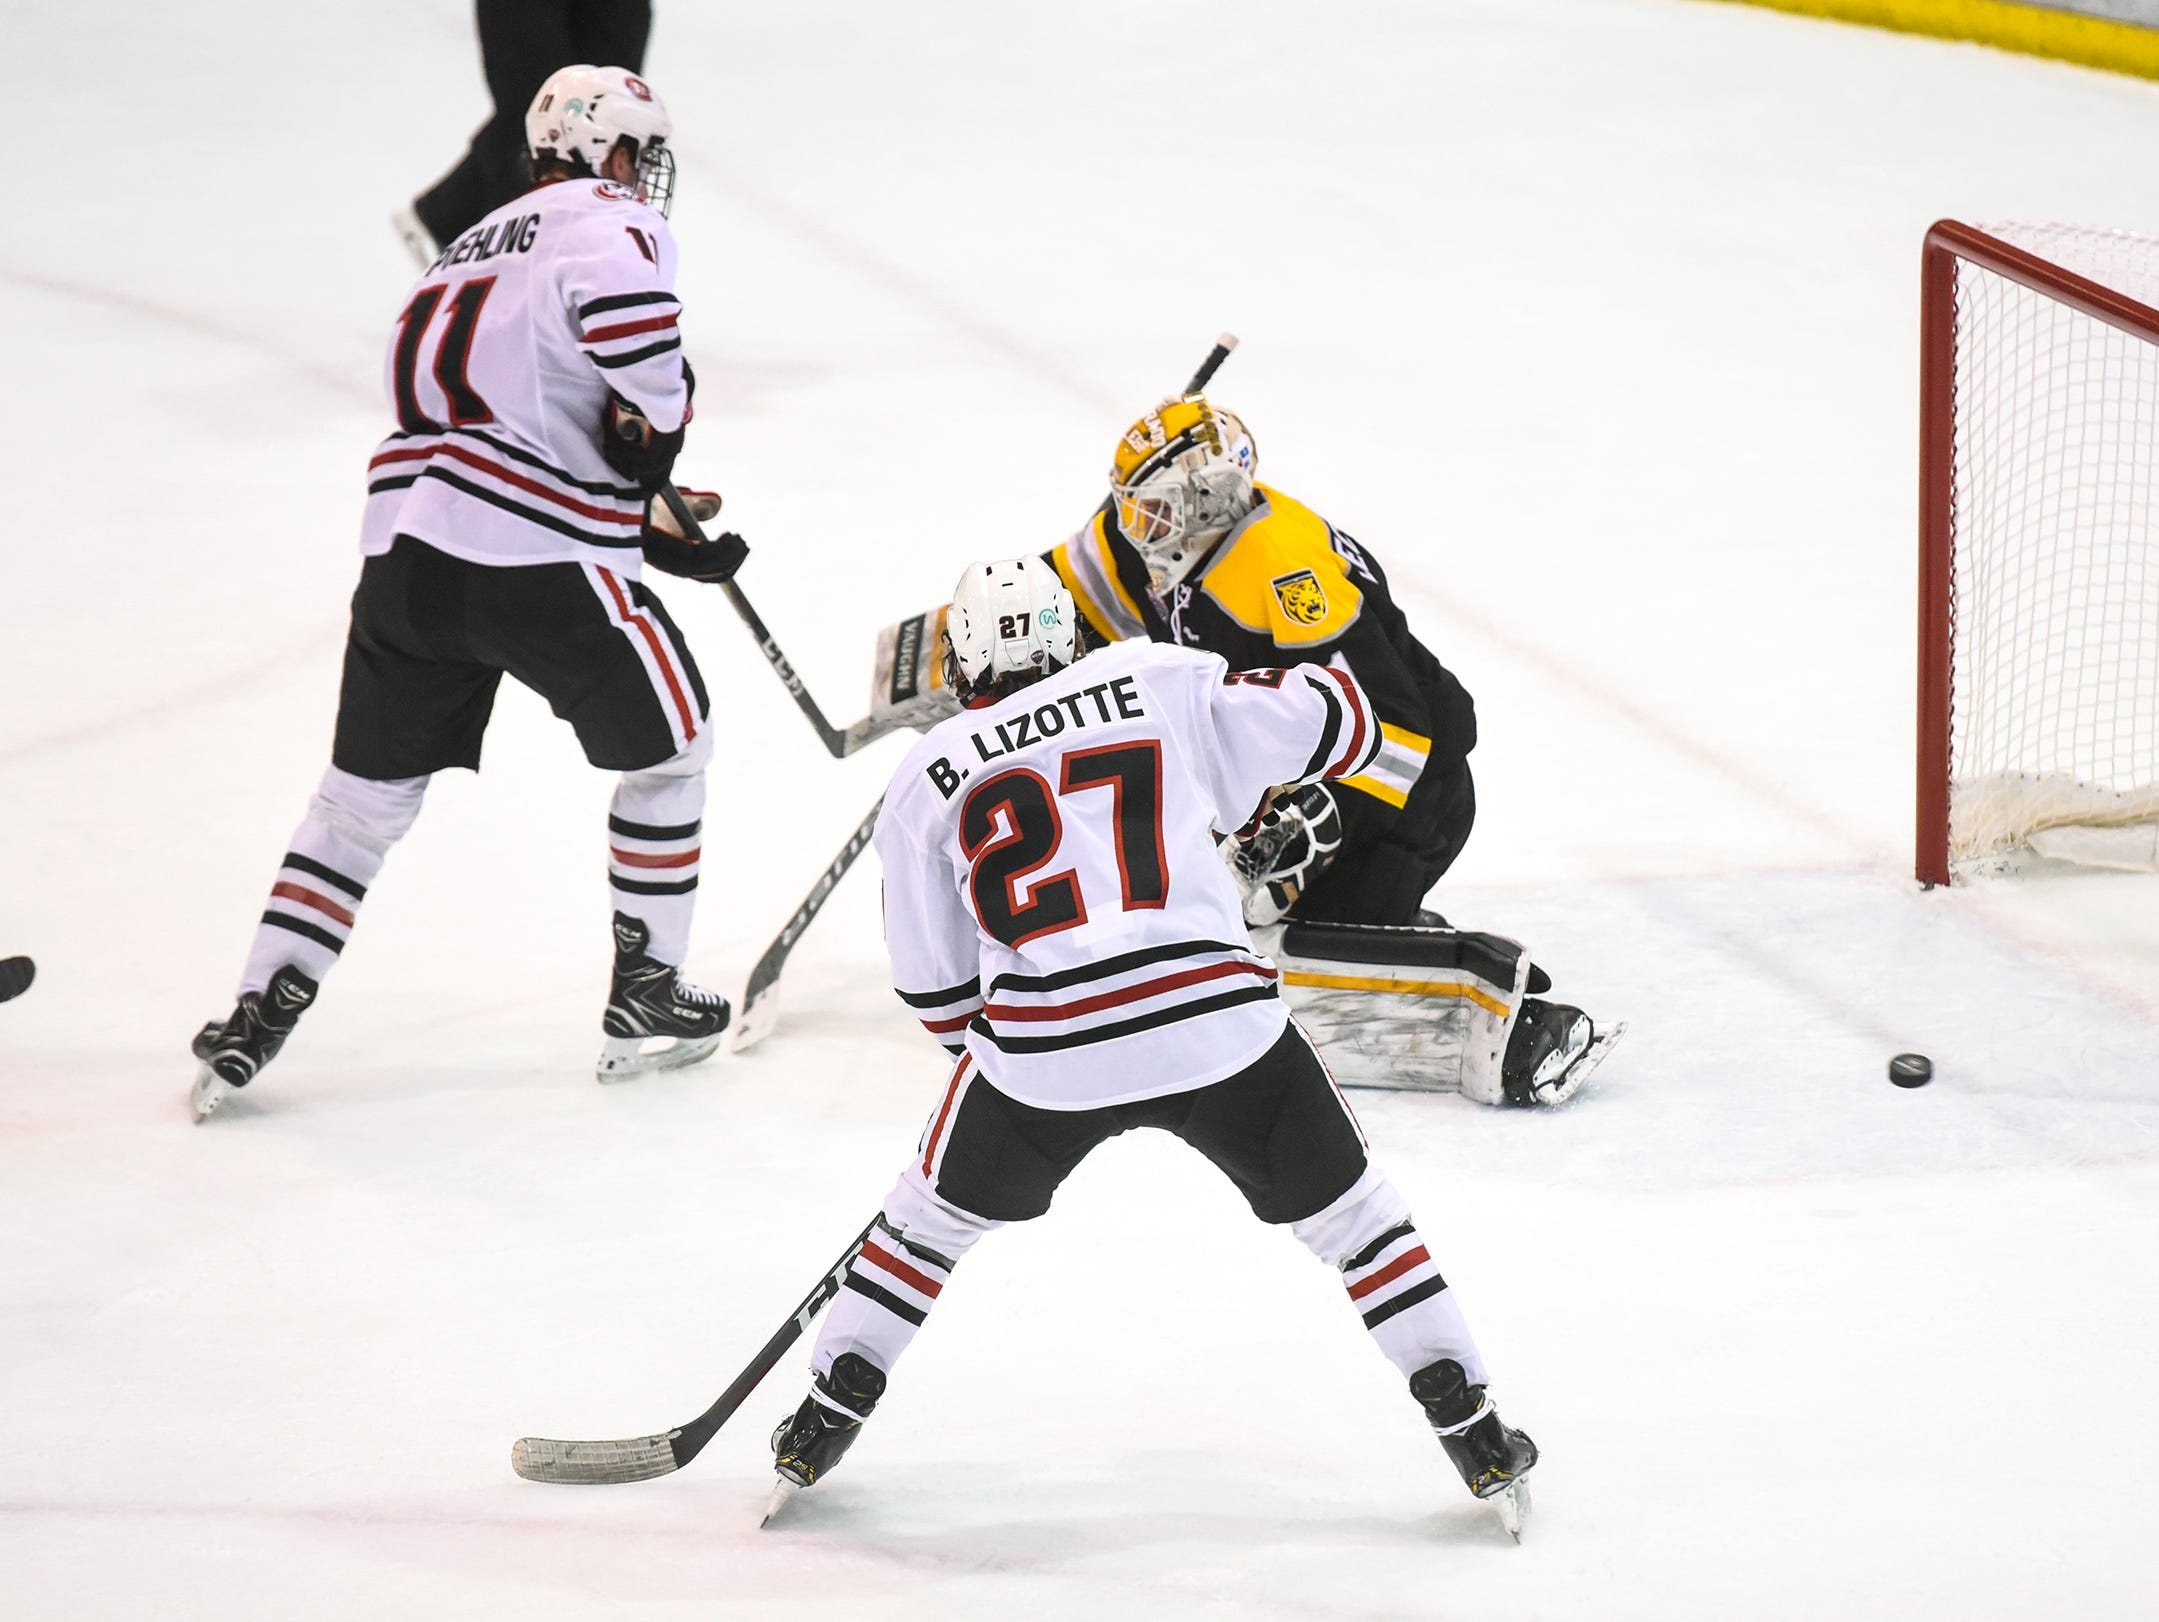 The puck skips past the Colorado College goal during the first period of the Friday, Feb. 8, game at the Herb Brooks National Hockey Center in St. Cloud.